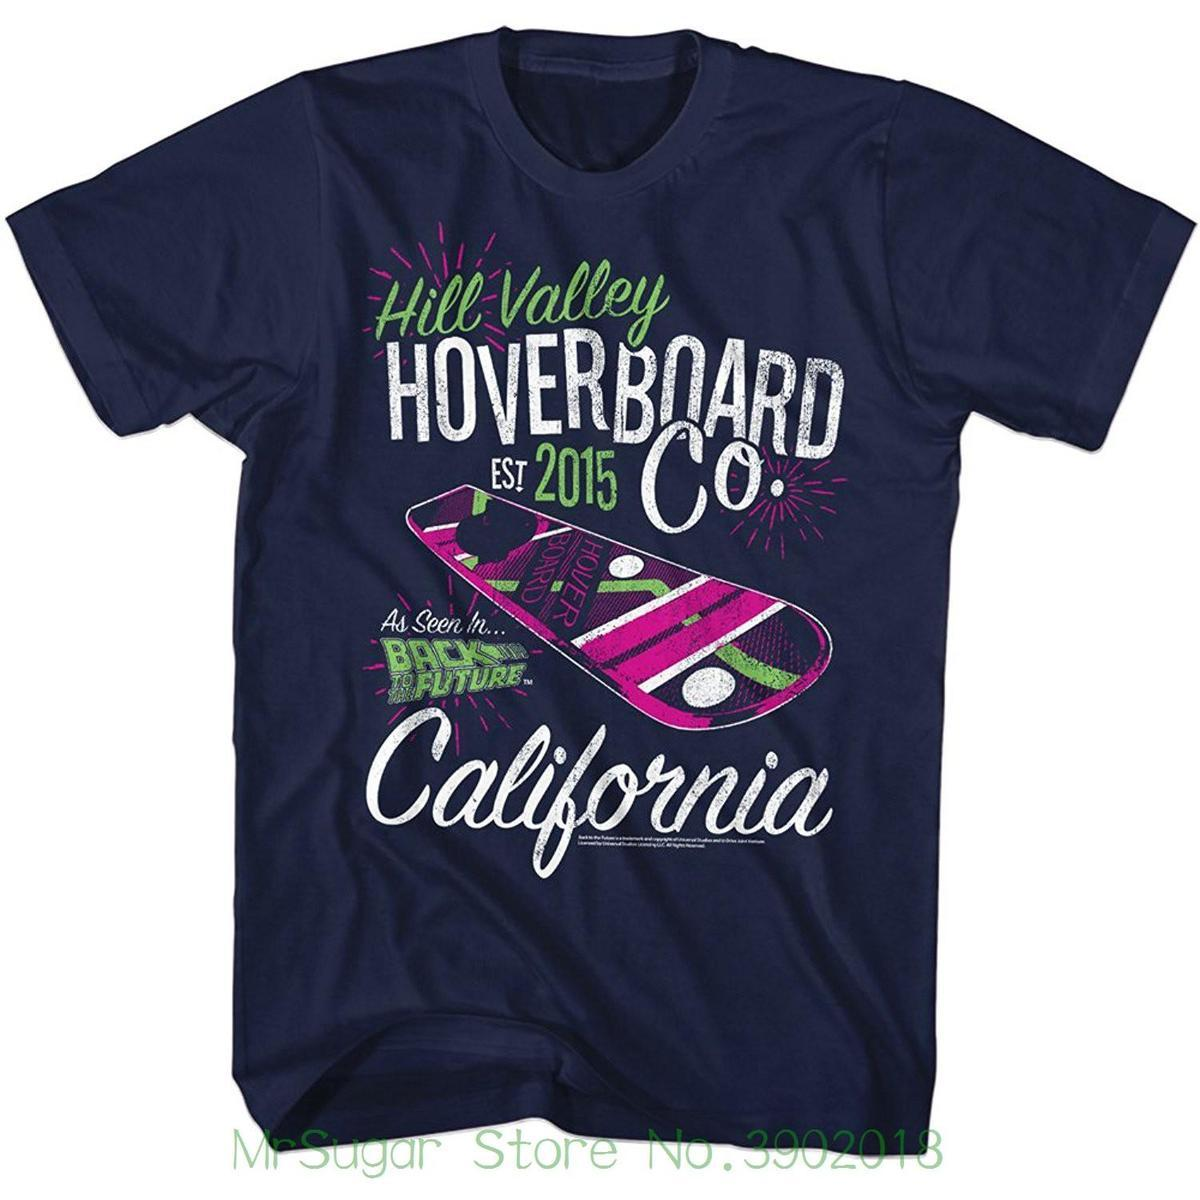 Hill Valley Hoverboard Company Navy Adult T-shirt Tshirt Men Black Short Sleeve Cotton Hip Hop T-shirt Print Tee Shirts